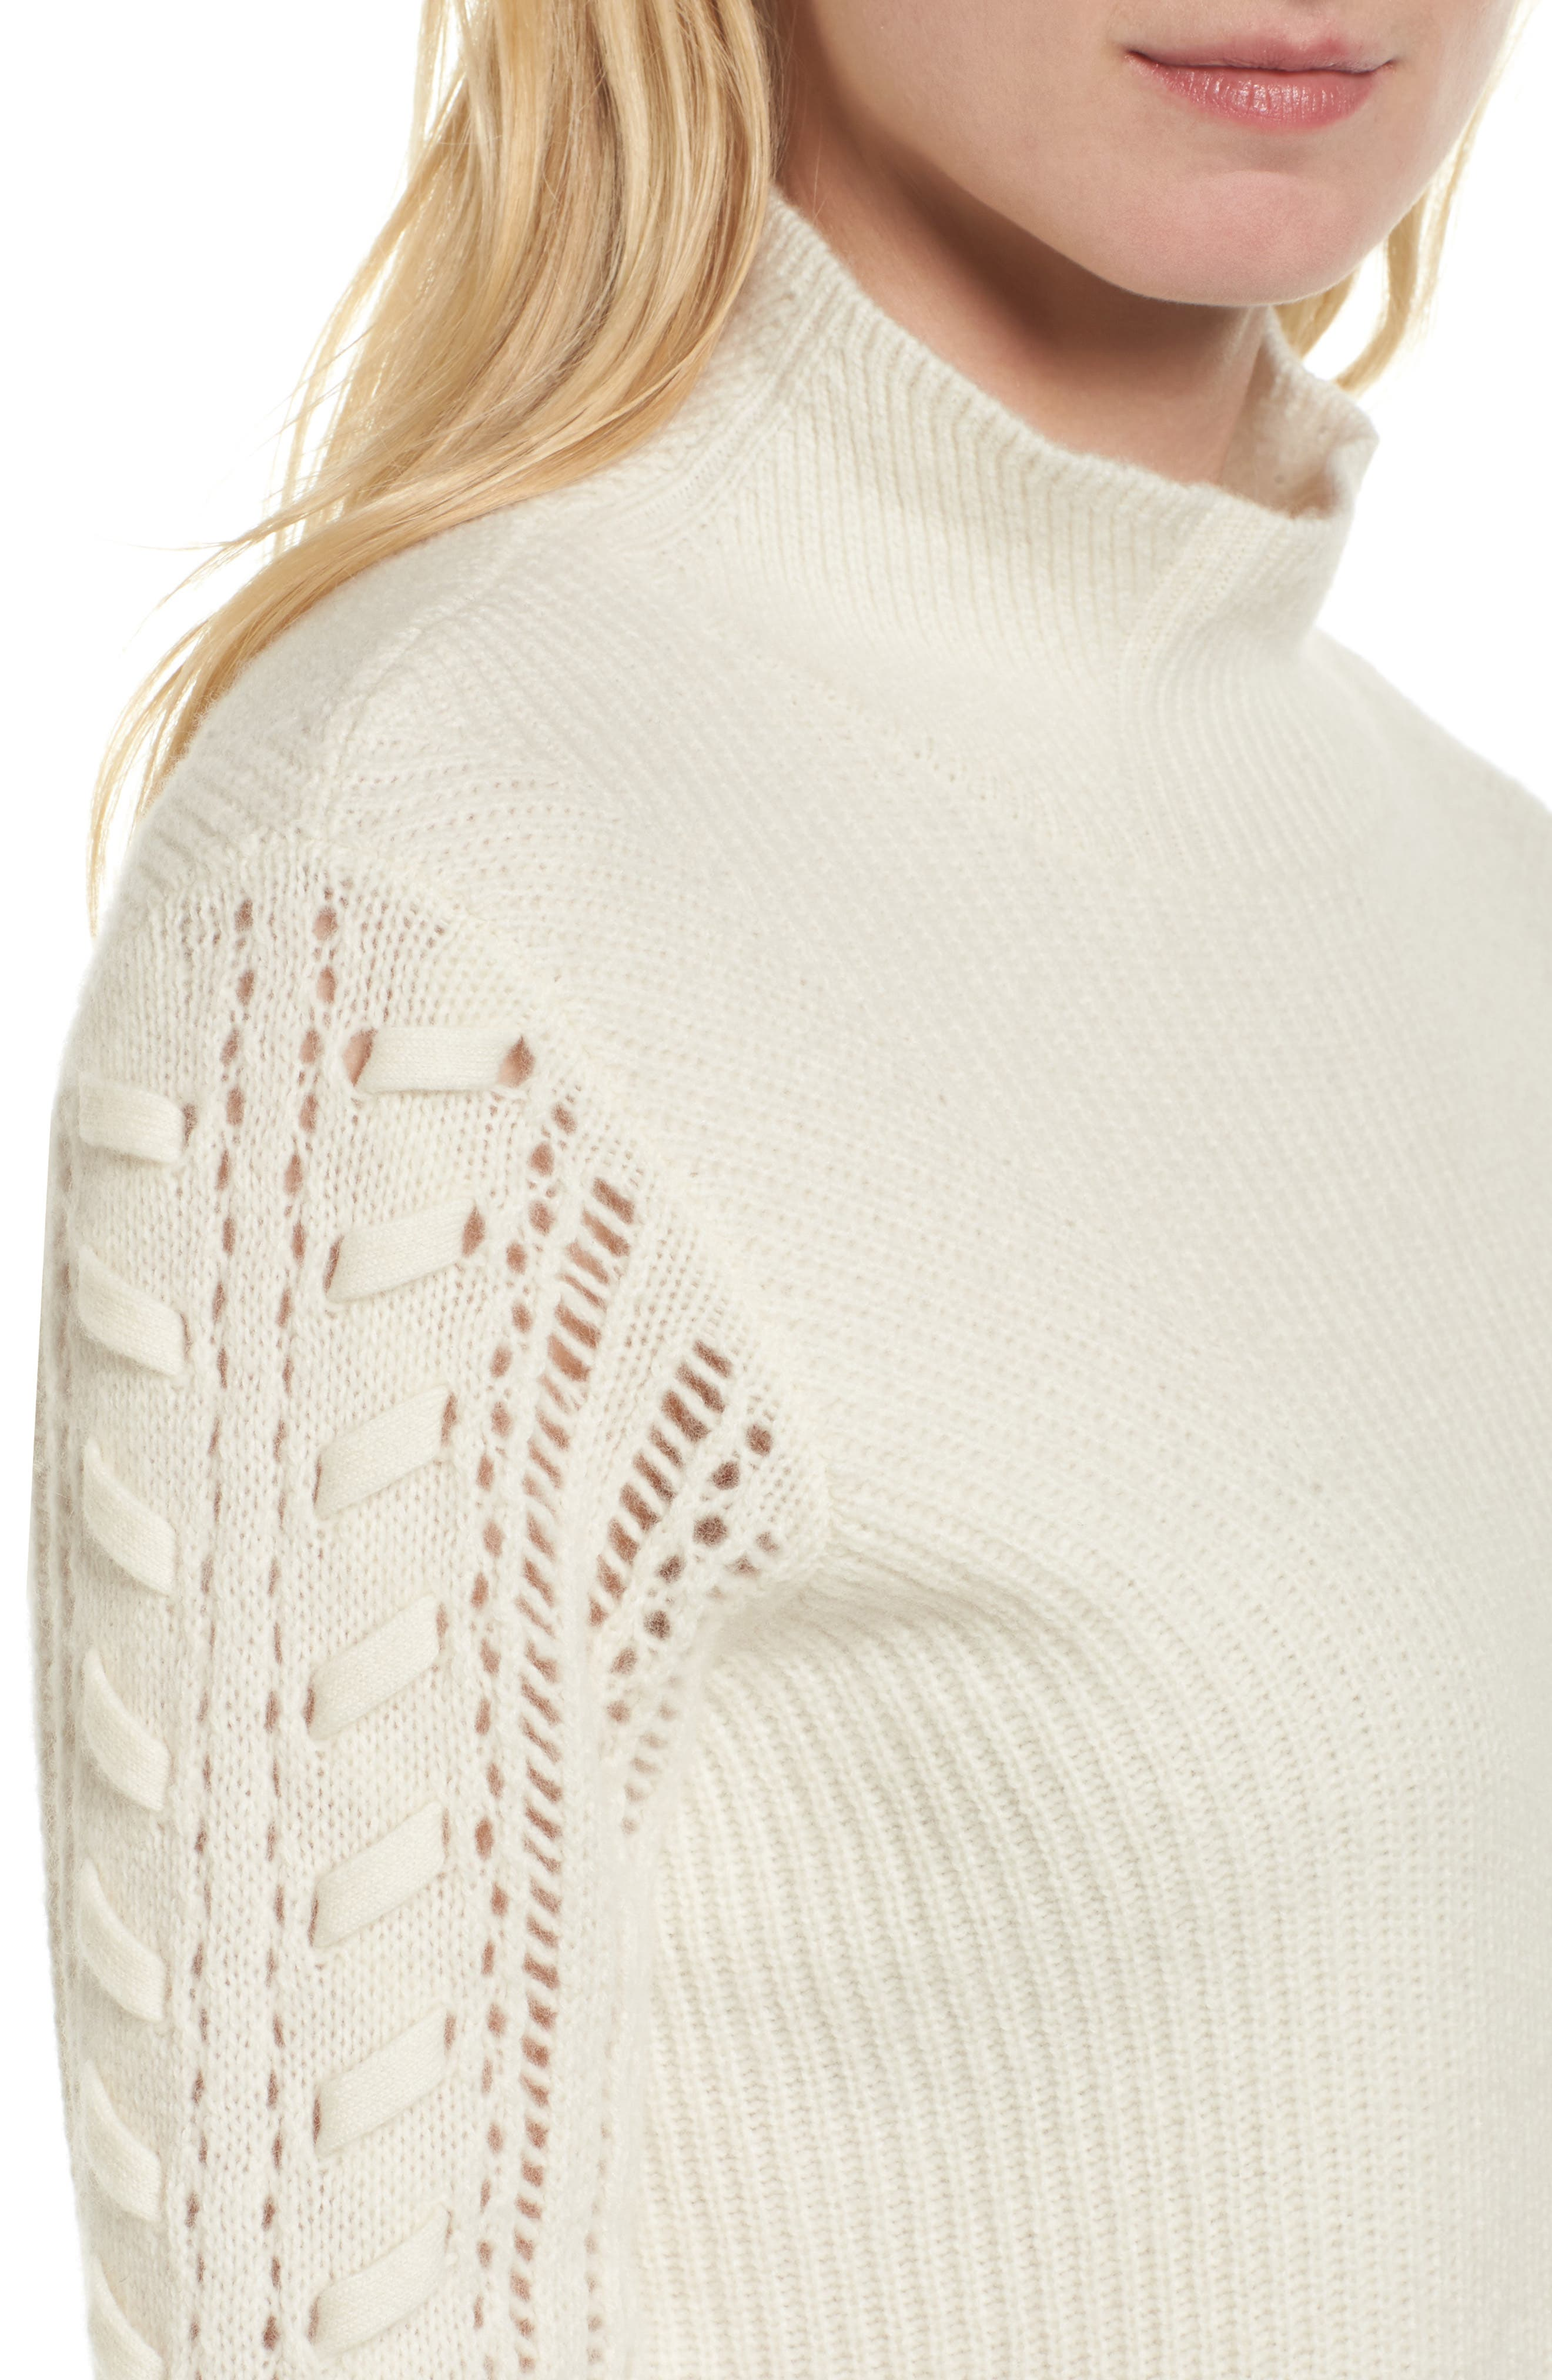 Mixed Stitch Cashmere Sweater,                             Alternate thumbnail 4, color,                             900